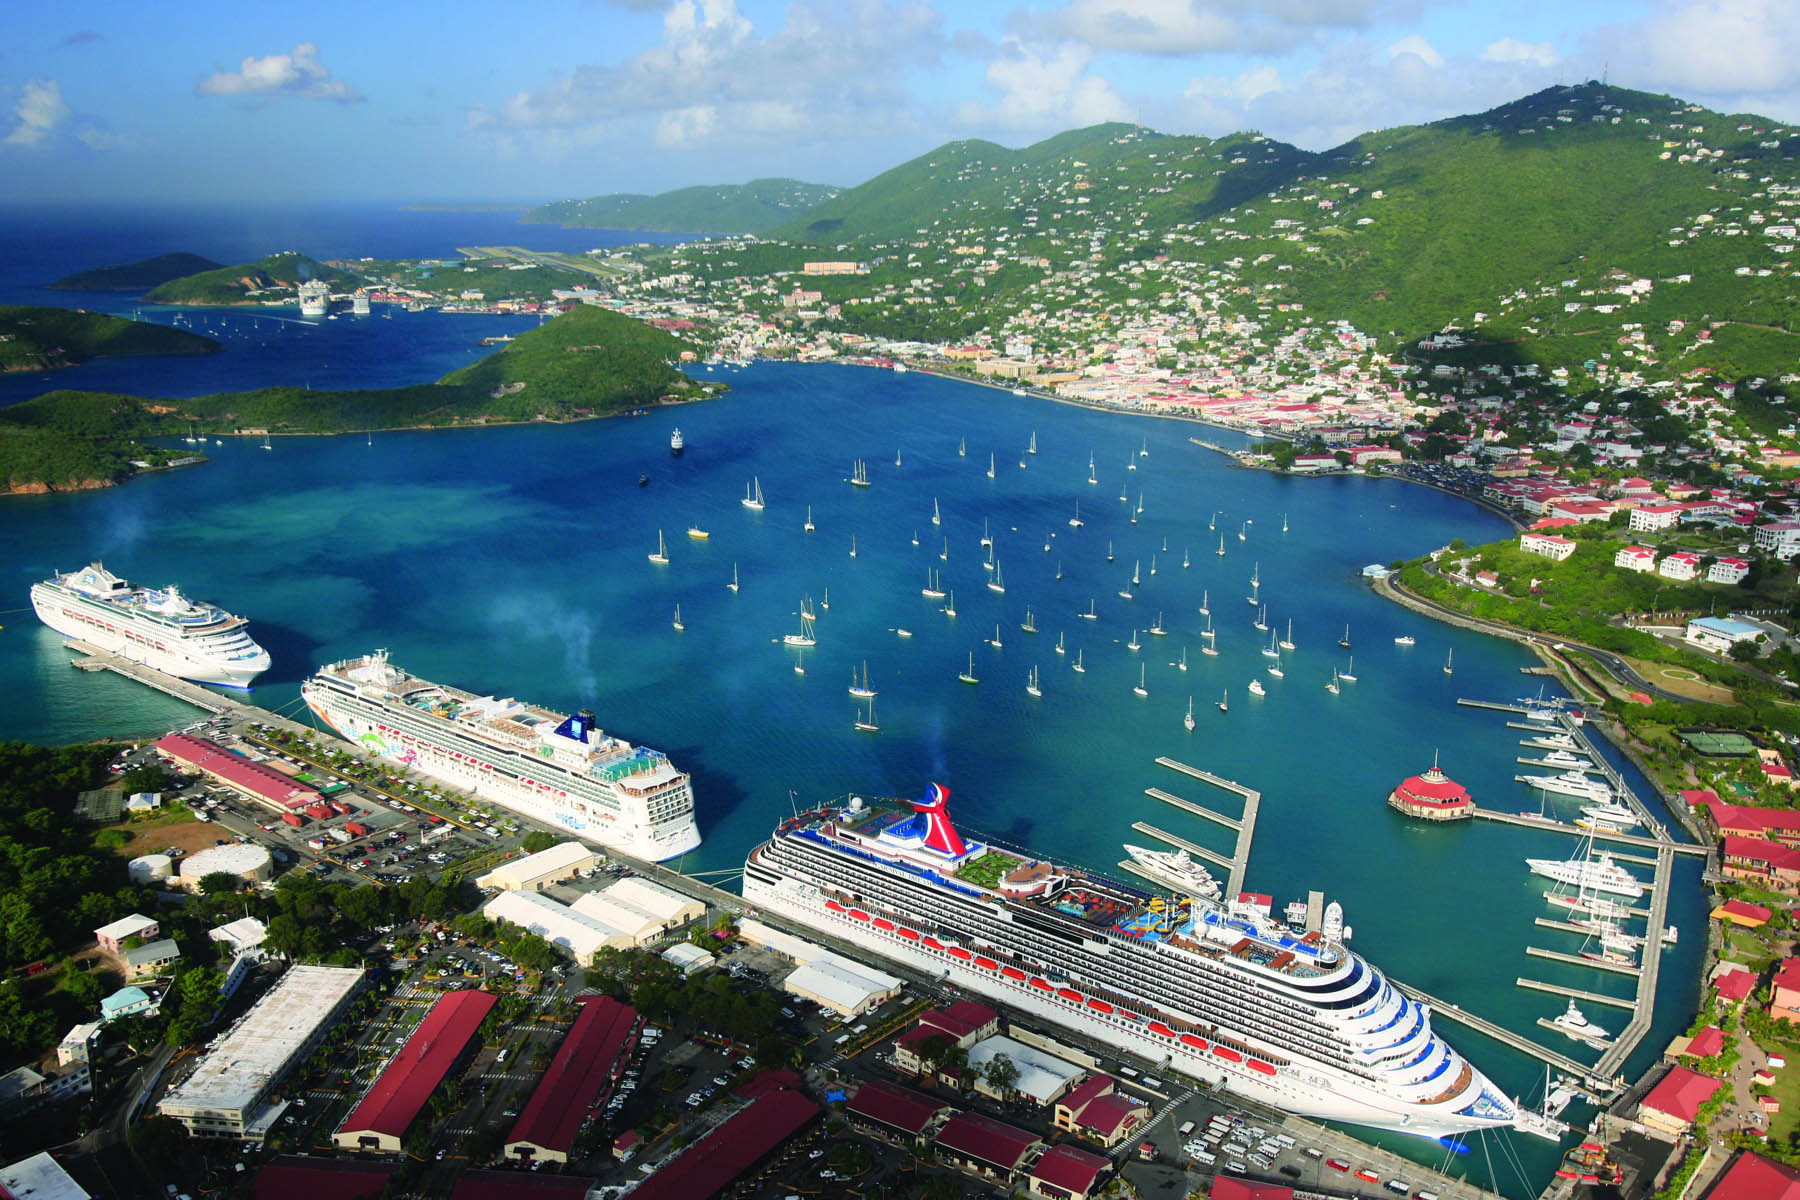 A view of the cruise port and Bay Area of St. Thomas